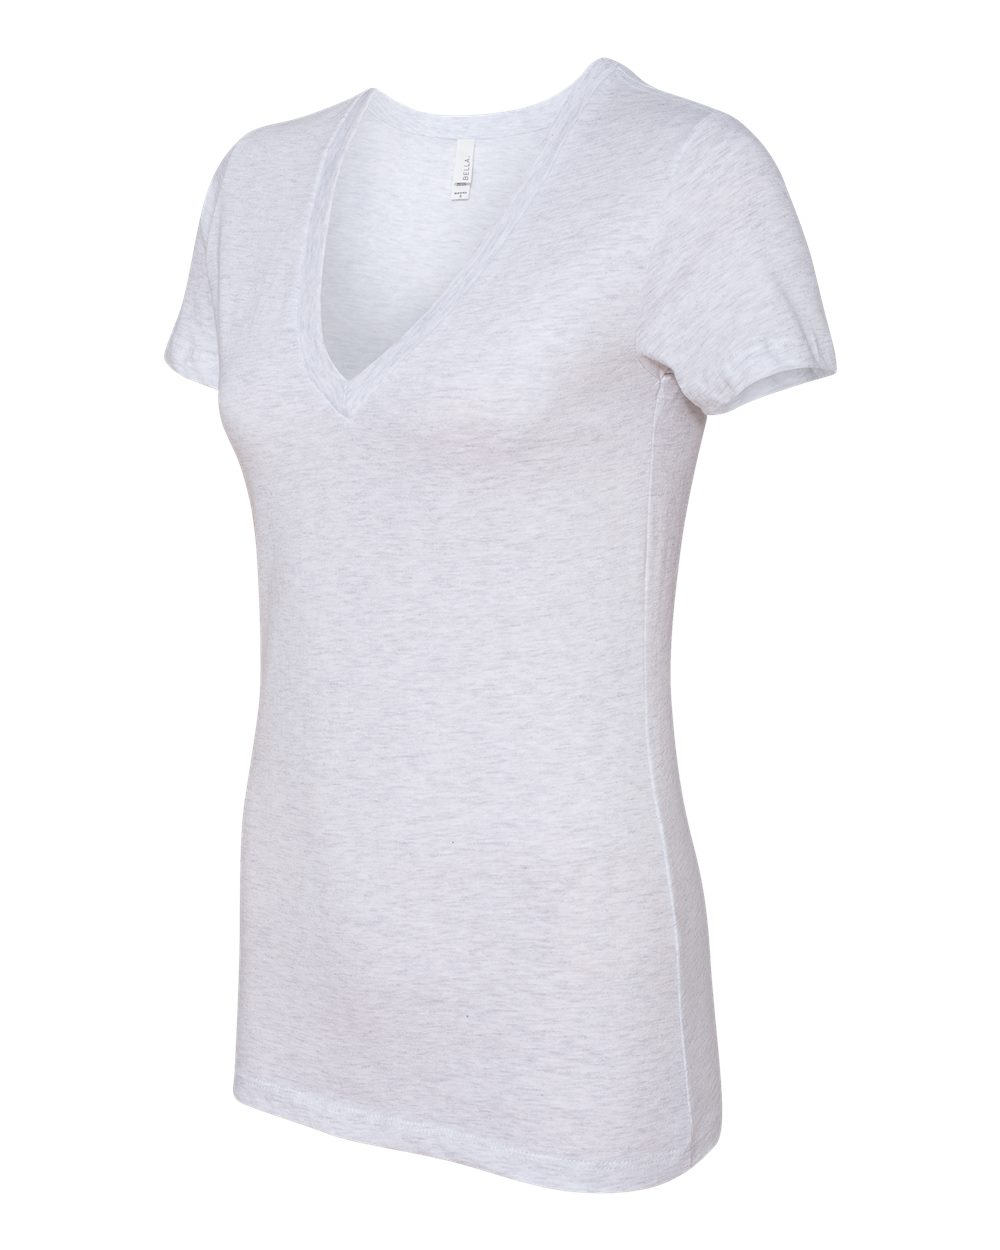 Bella-Canvas-Women-039-s-Jersey-Short-Sleeve-Deep-V-Neck-T-Shirt-B6035-S-2XL thumbnail 12